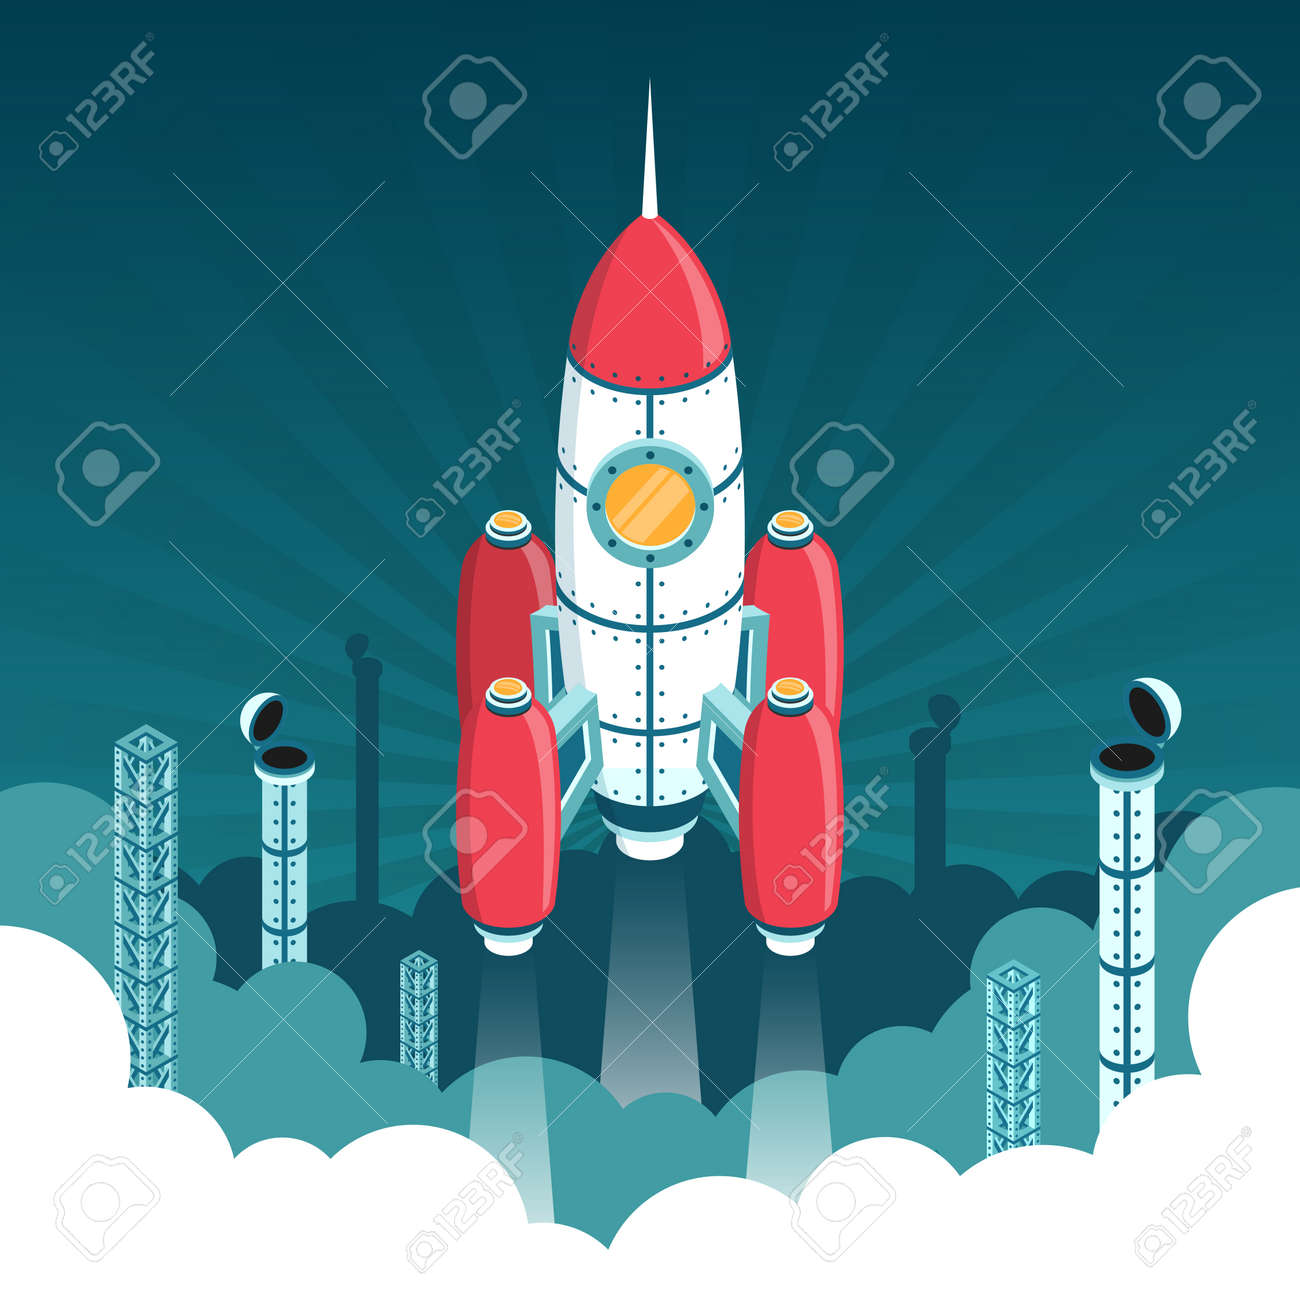 Launch of 3d isometric rocket into space against backdrop of industrial structures and smoke clubs. Stock Vector - 92805244